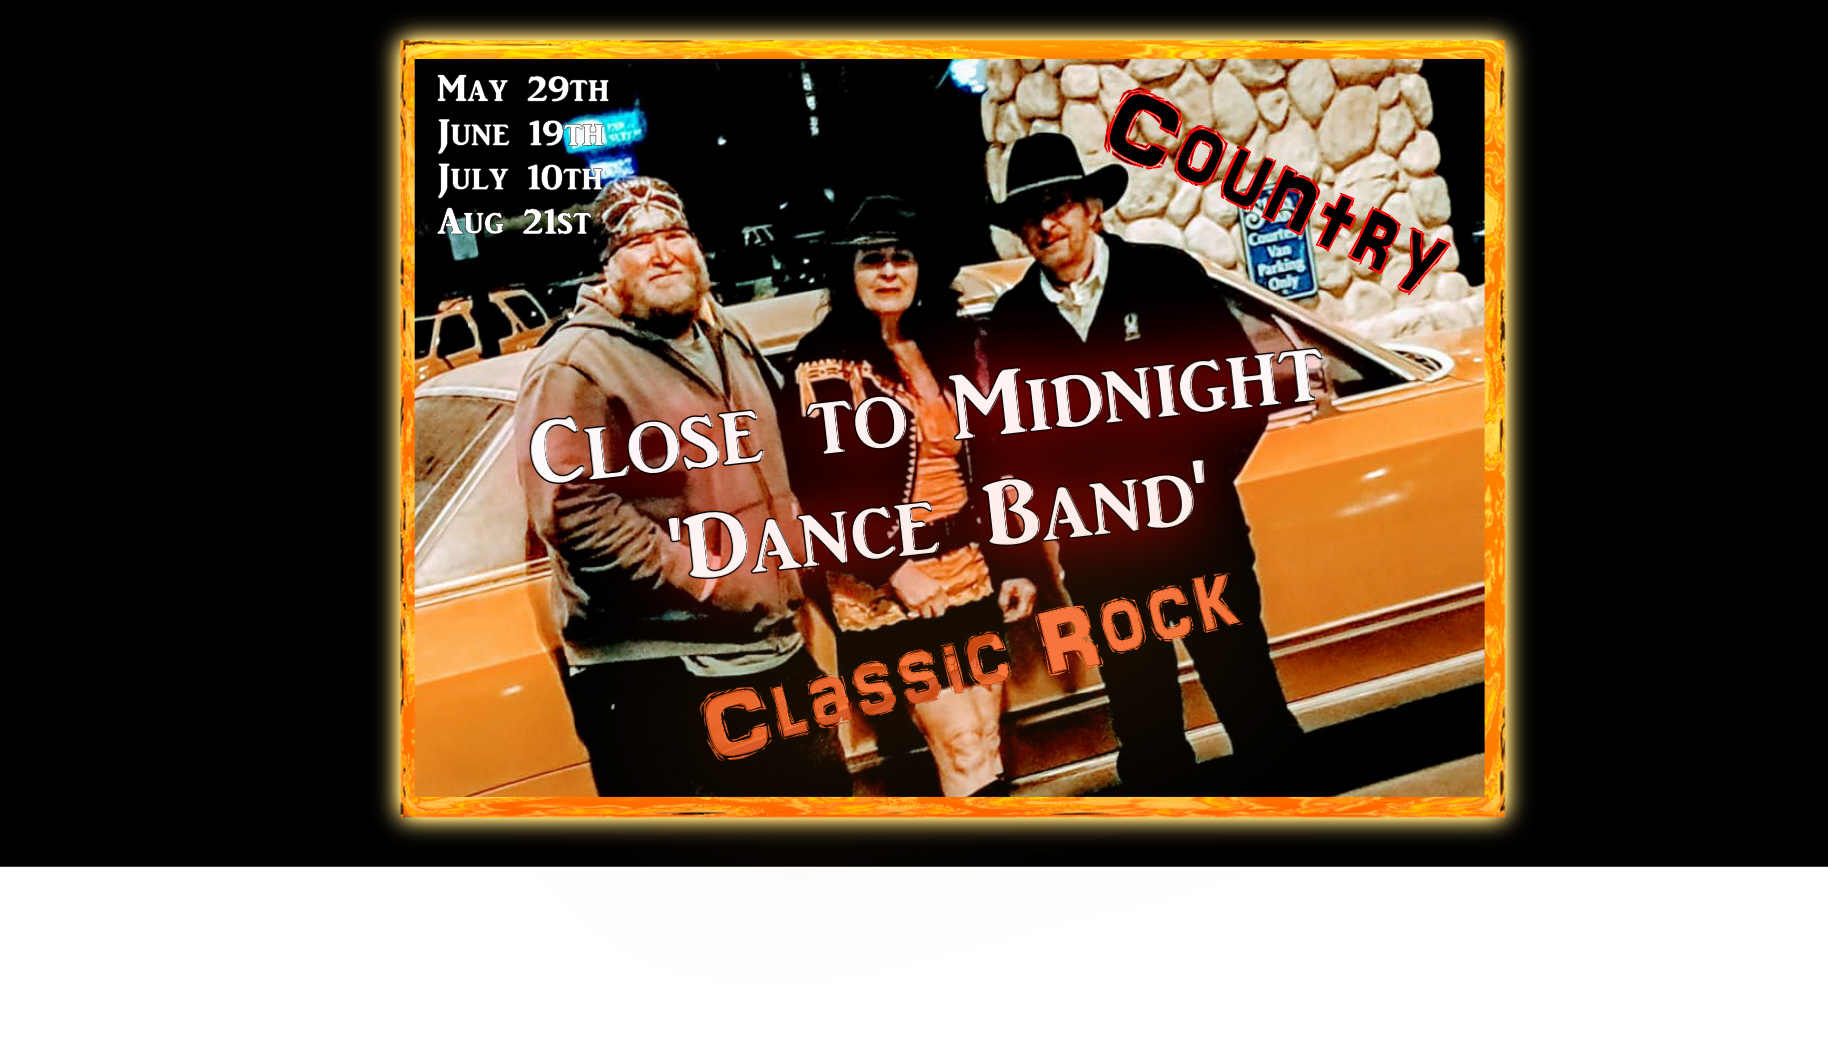 Live Country and Classic Rock Band - Close to Midnight